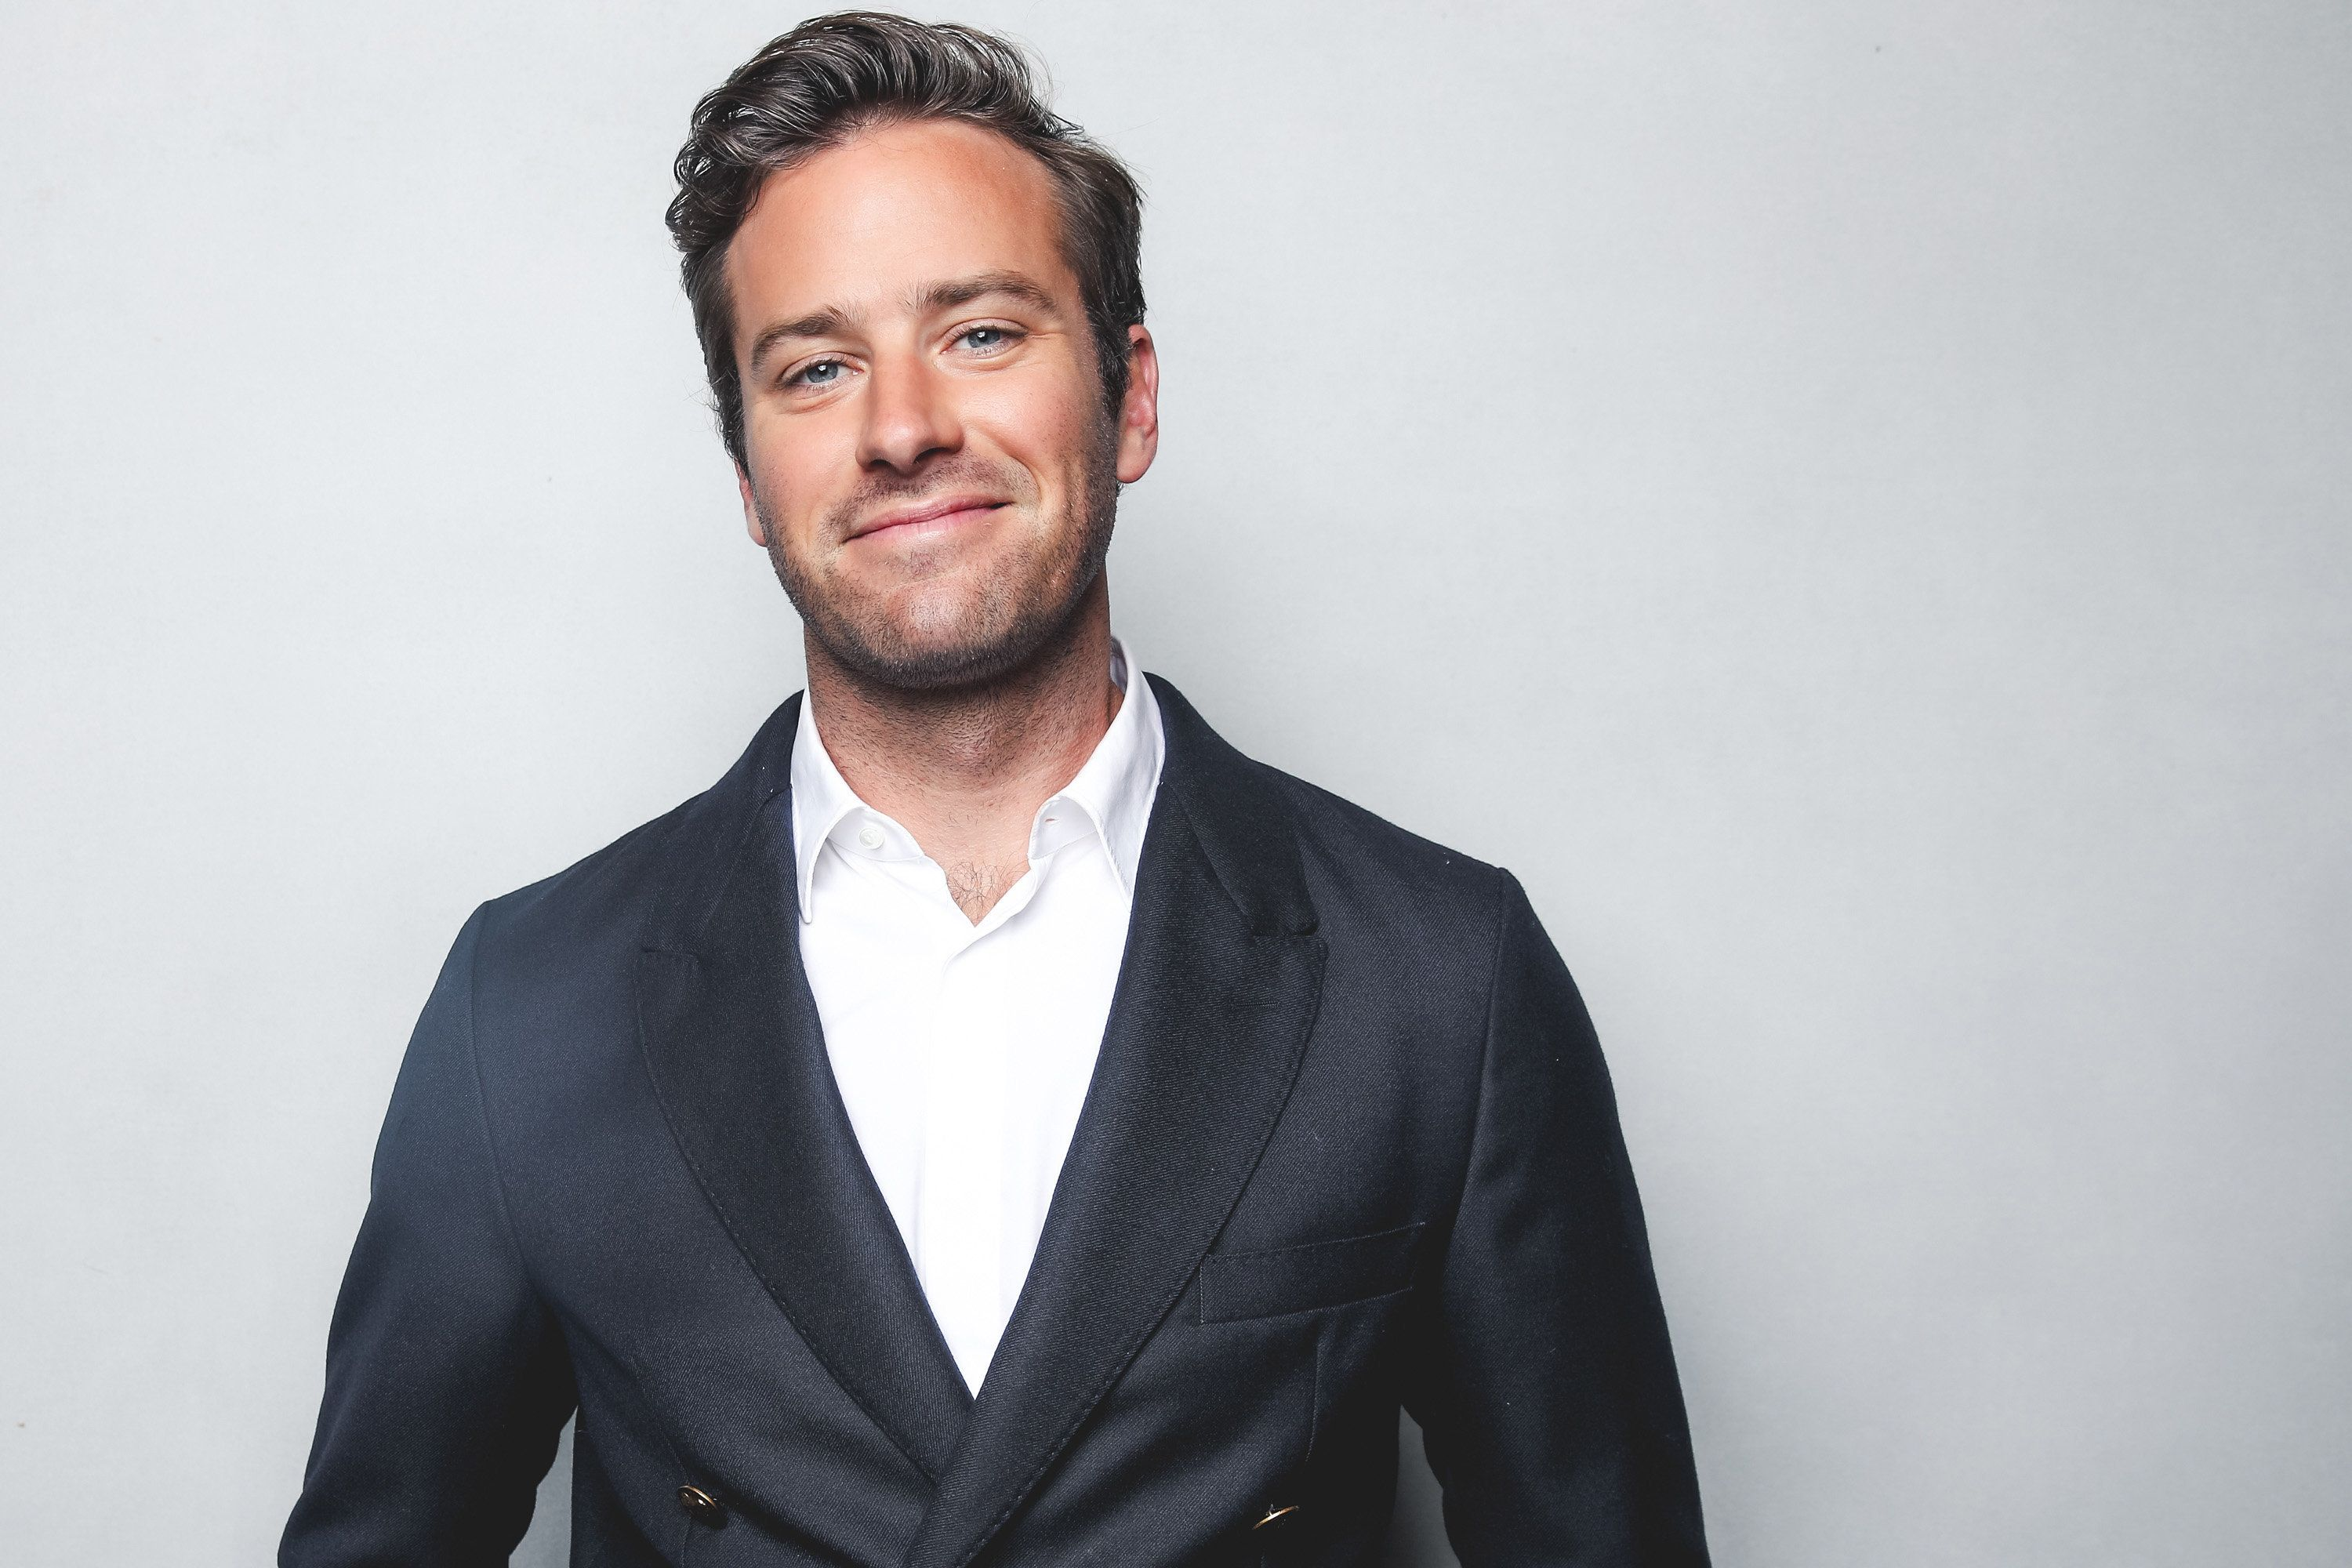 BEVERLY HILLS, CA - JANUARY 06:  Armie Hammer poses for a portrait at the BAFTA Los Angeles Tea Party on January 6, 2018 in Beverly Hills, California.  (Photo by Rich Fury/BAFTA LA/Getty Images)